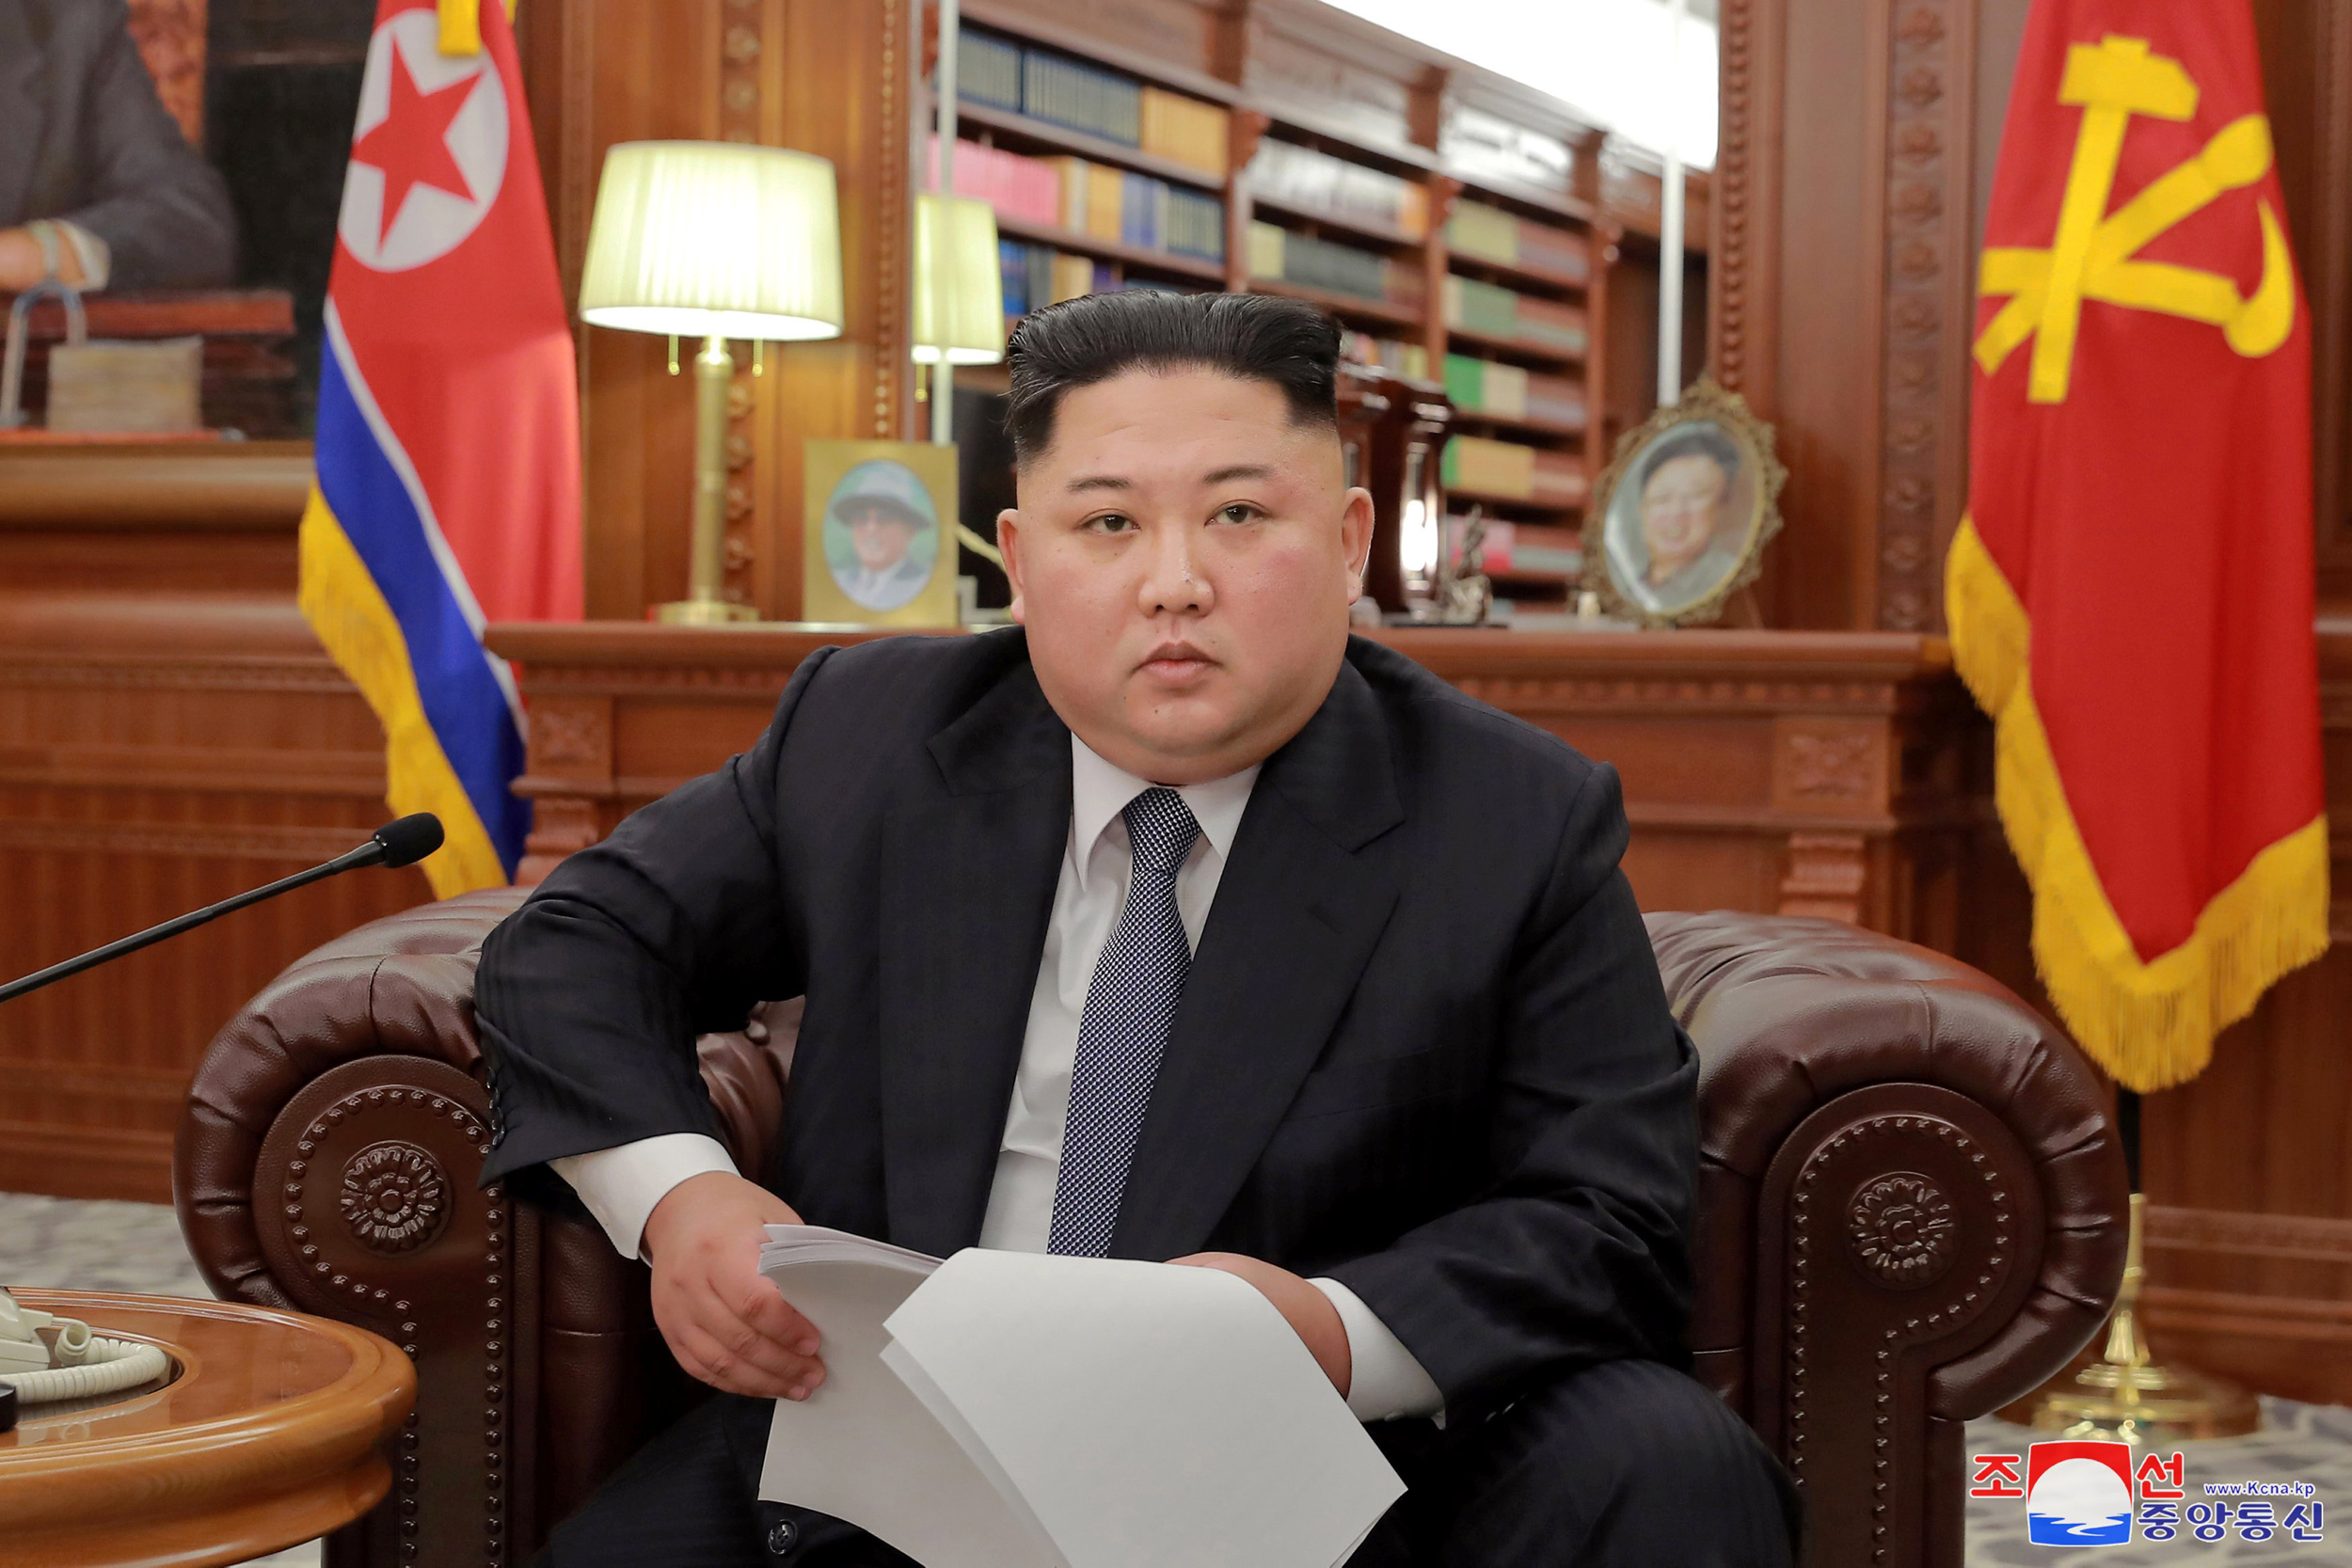 Kim Jong Un says 'new path' inevitable if U.S. demands unilateral action